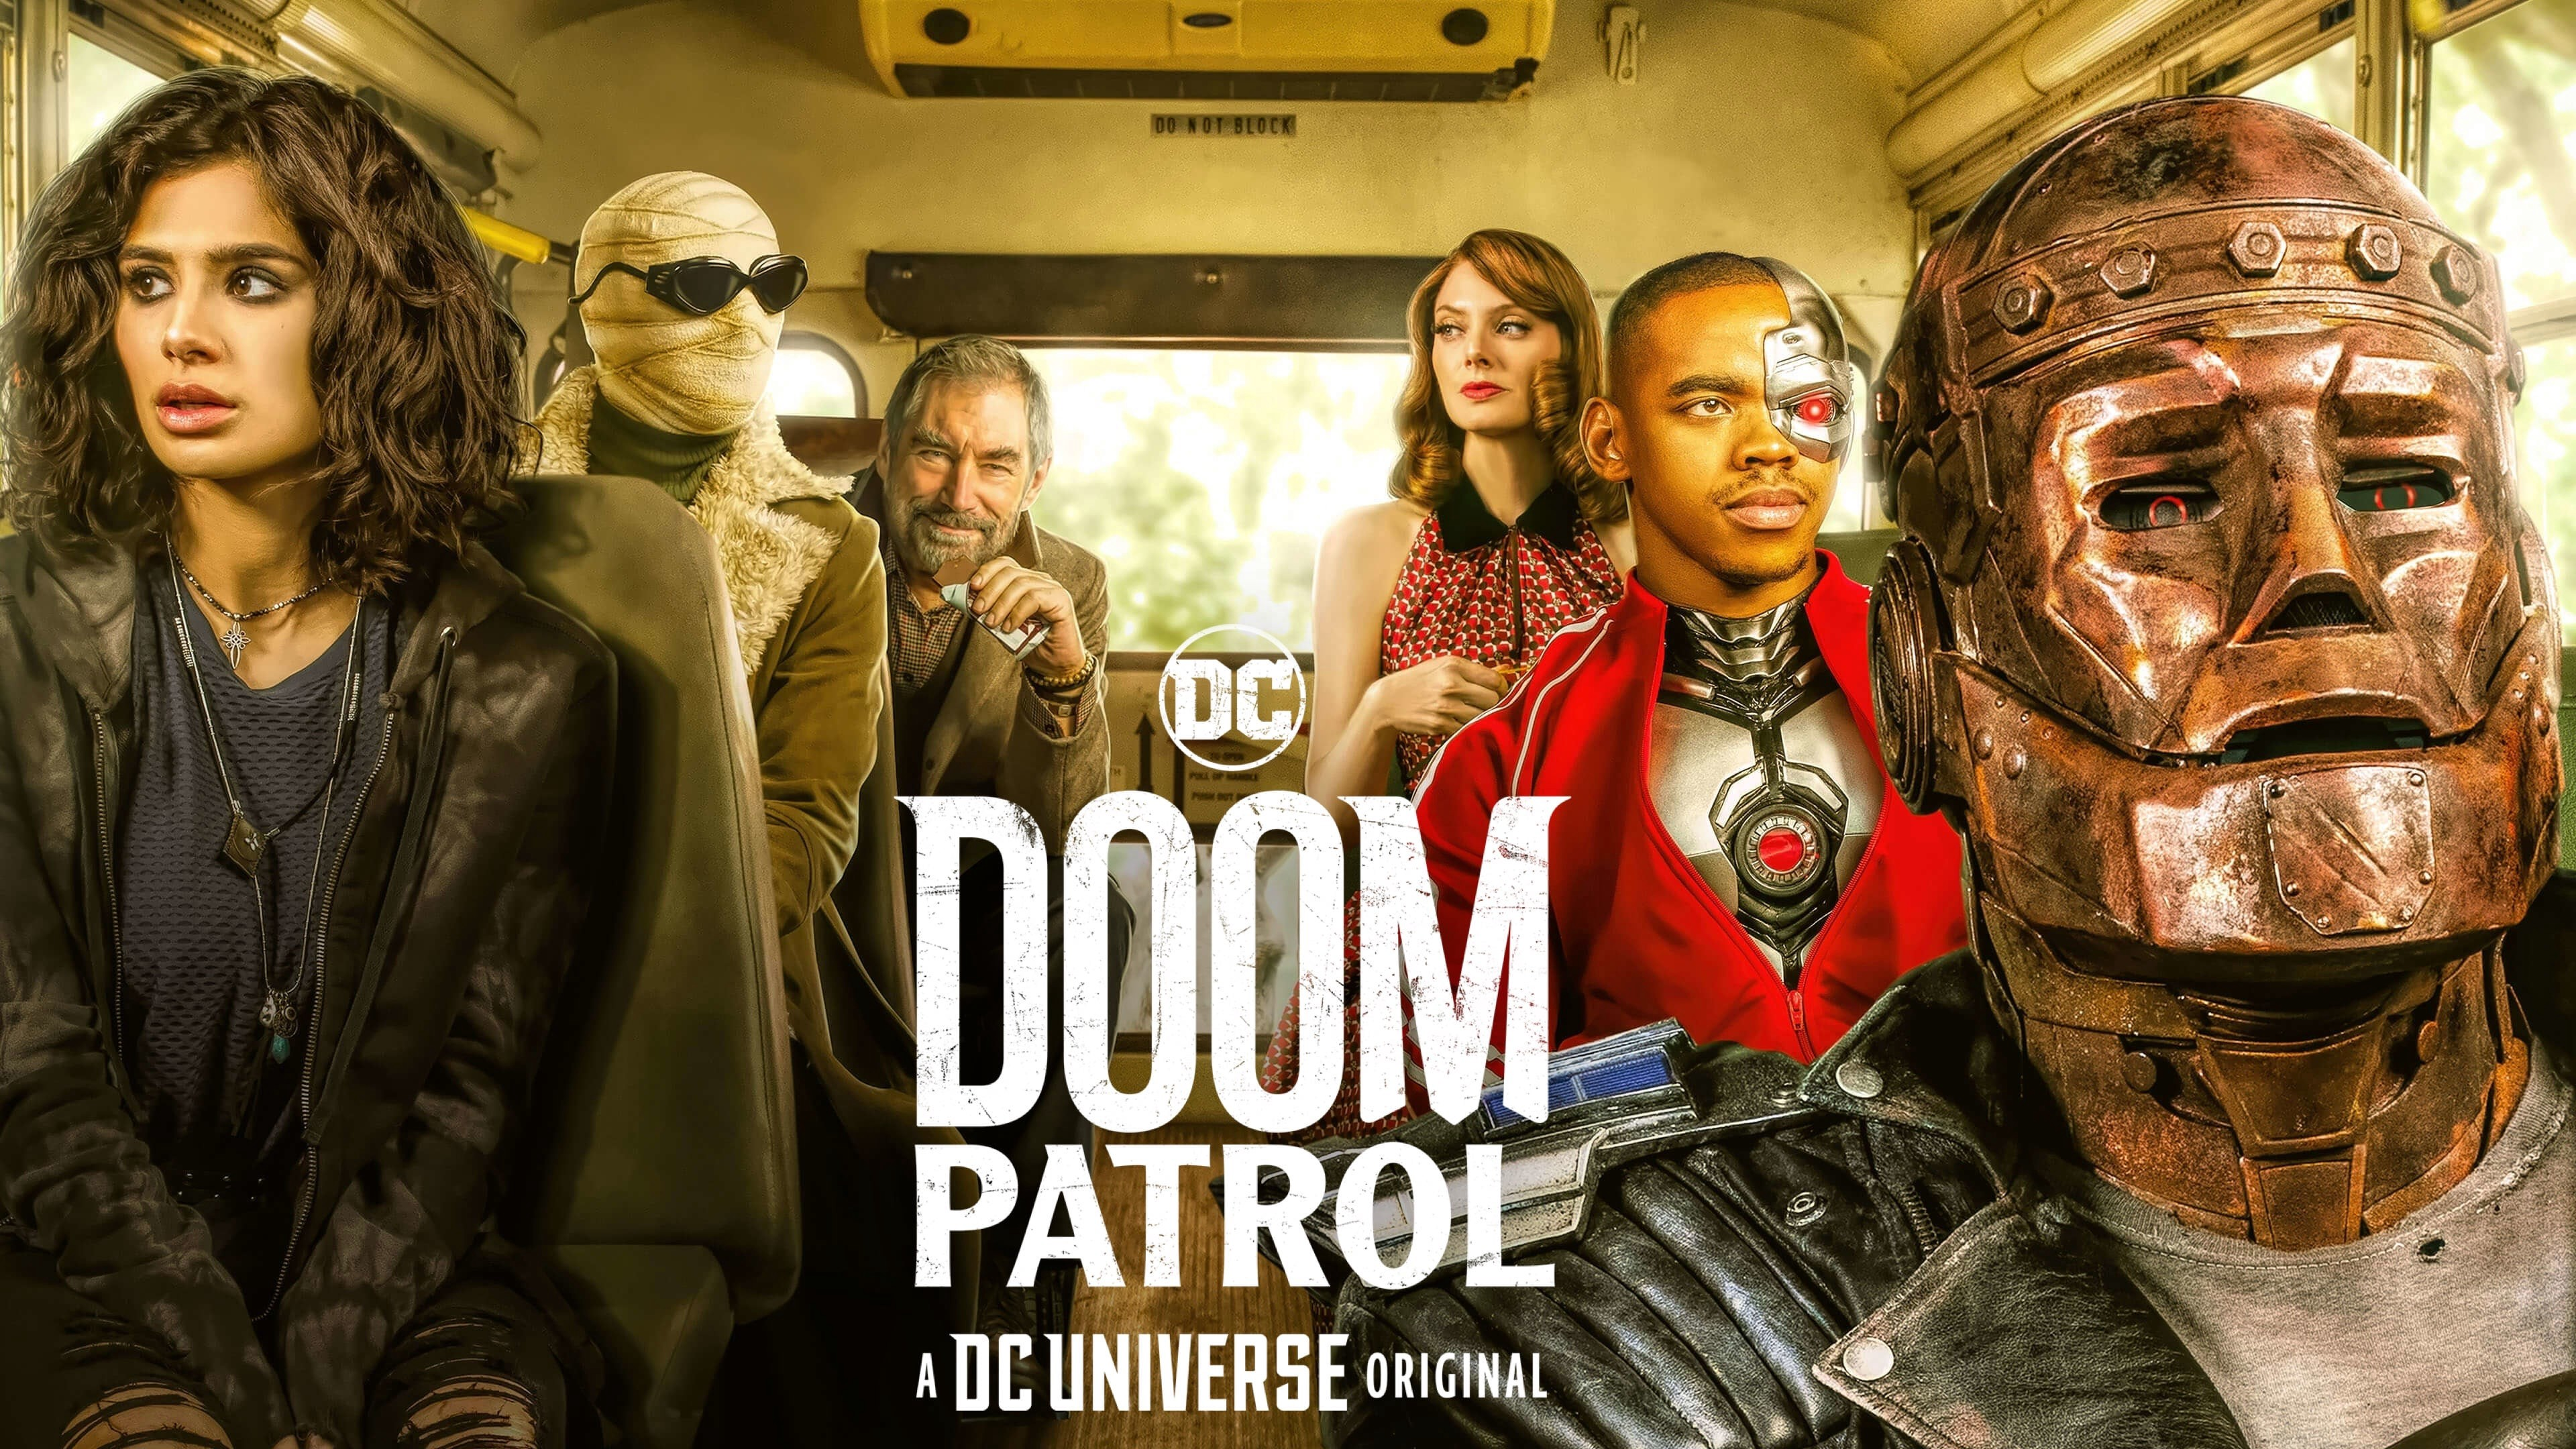 Doom Patrol Season 2 Episodes 4 Series S2e4 By Embrever Jul